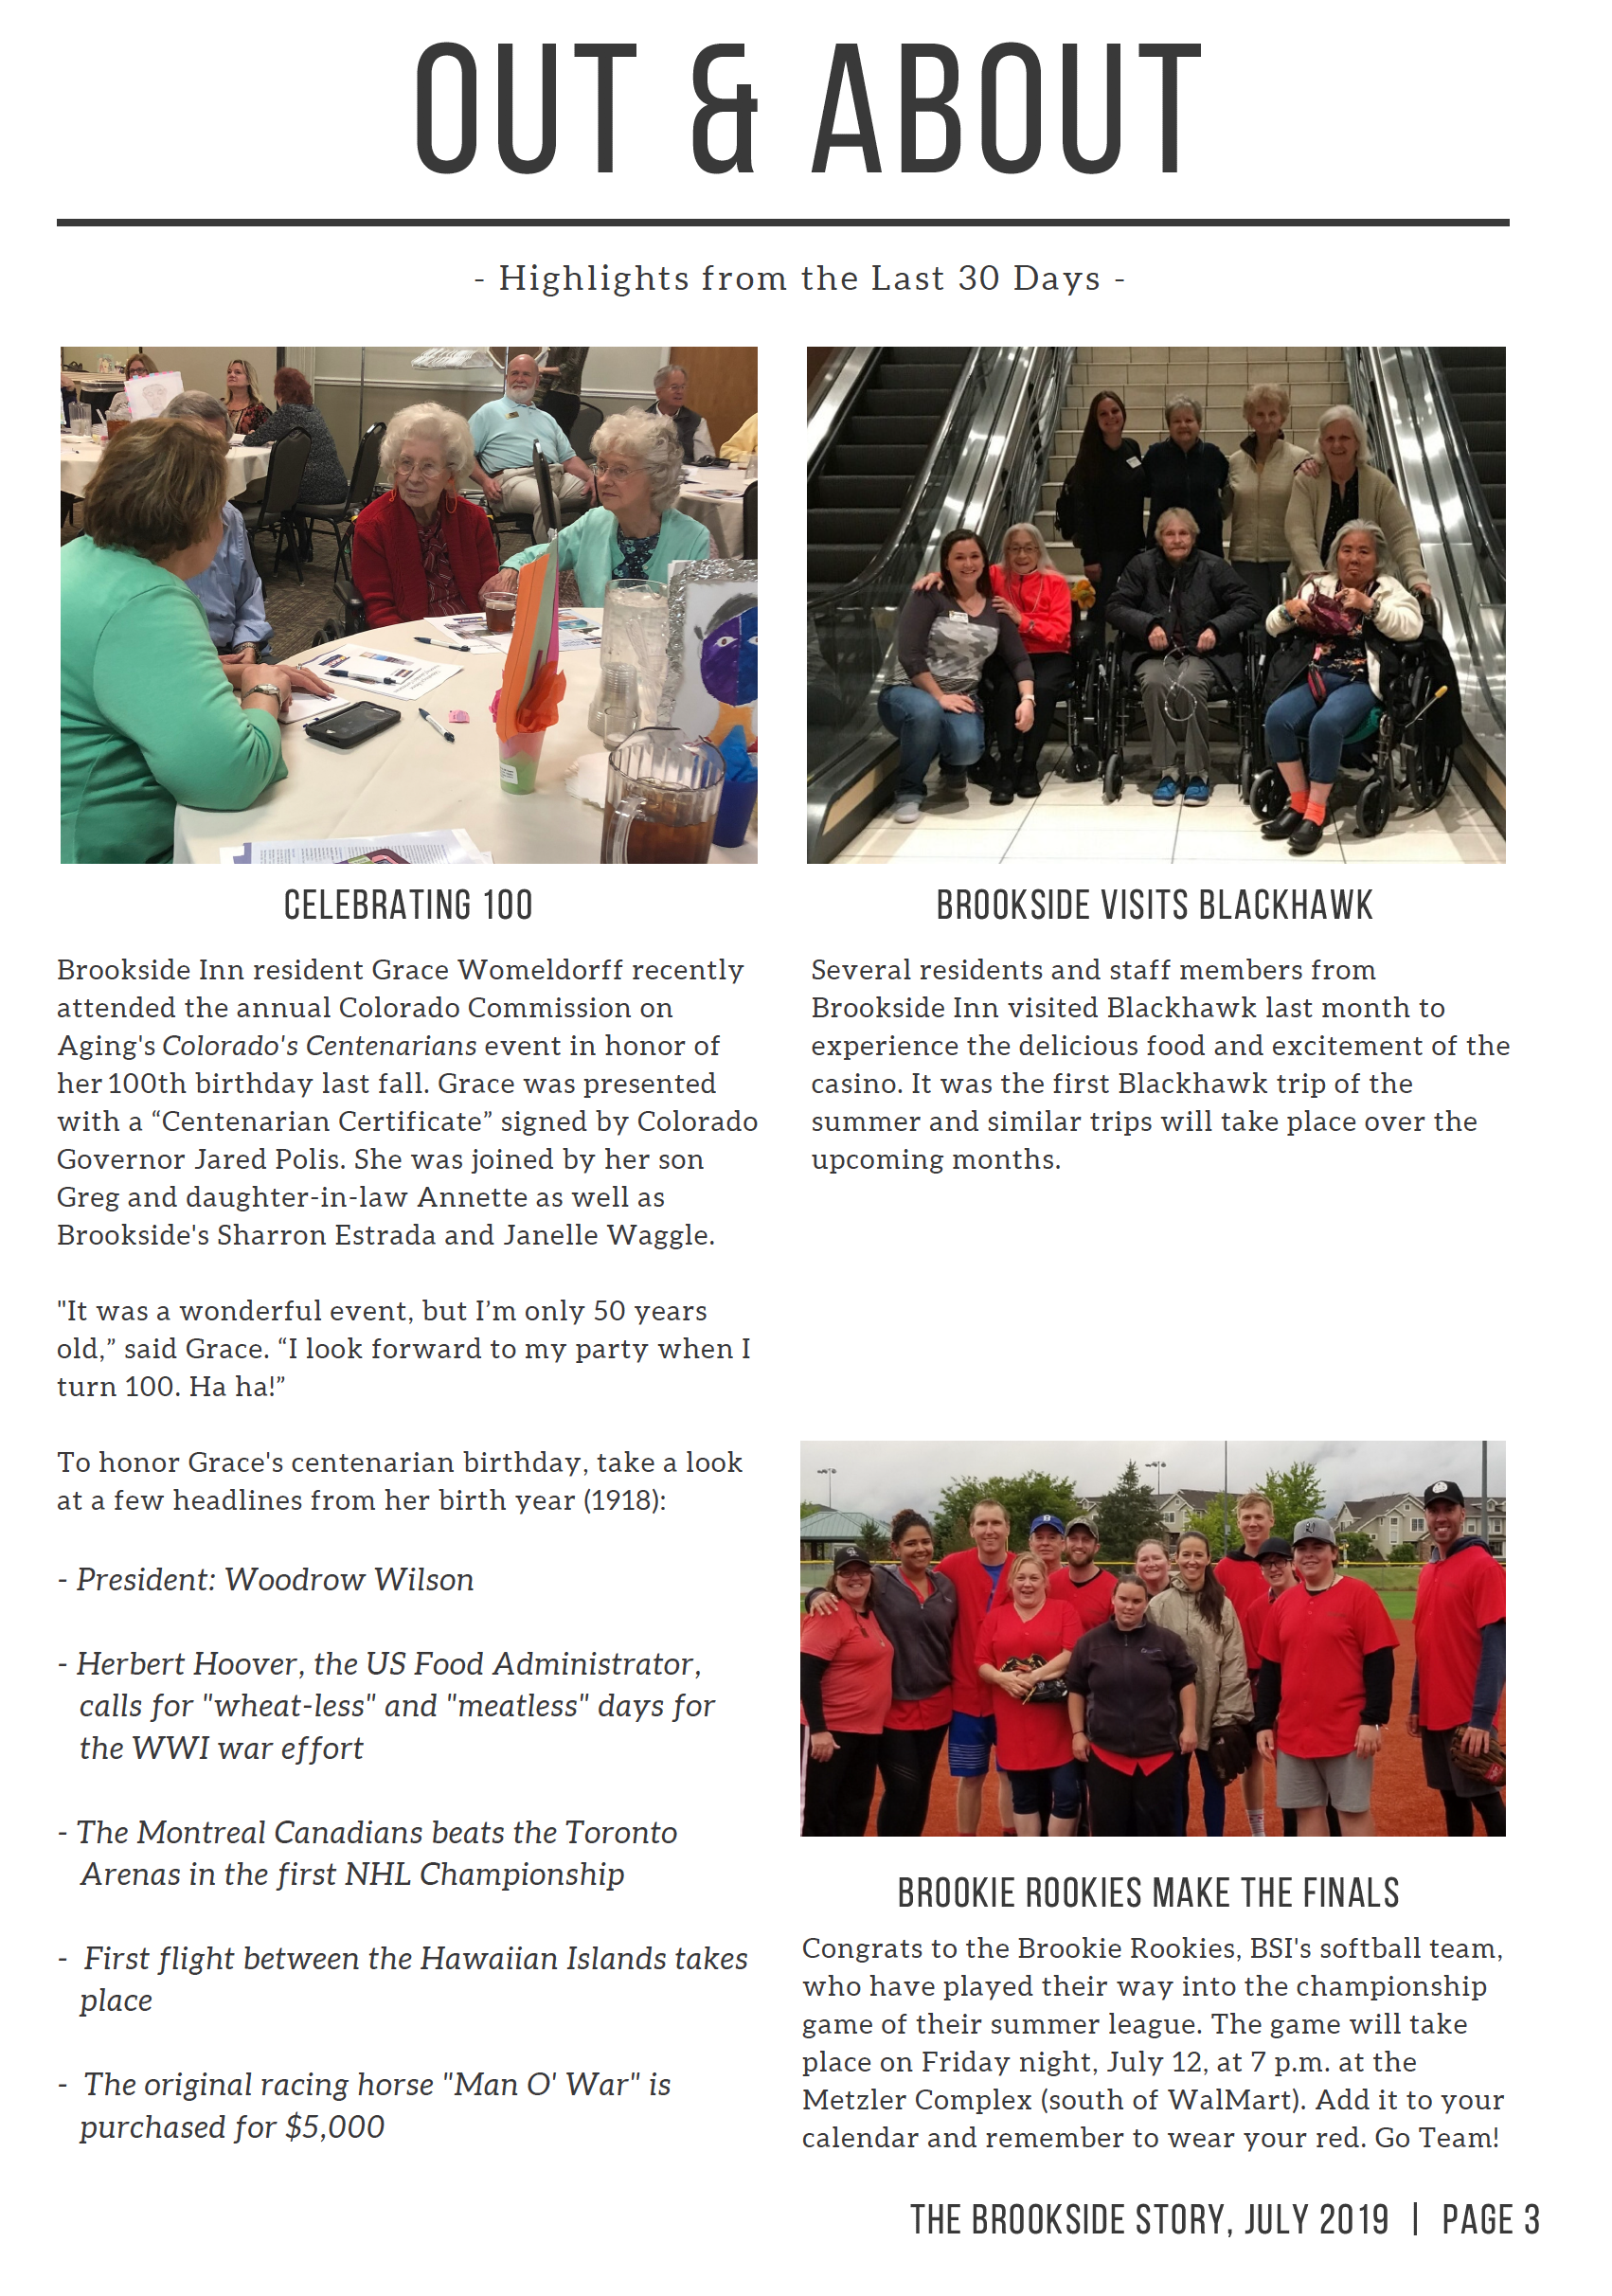 Page 3 sharing the out and about adventures of residents celebrating 100th birthdays, visiting Blackhawk, and brookie rookies that made the finals.